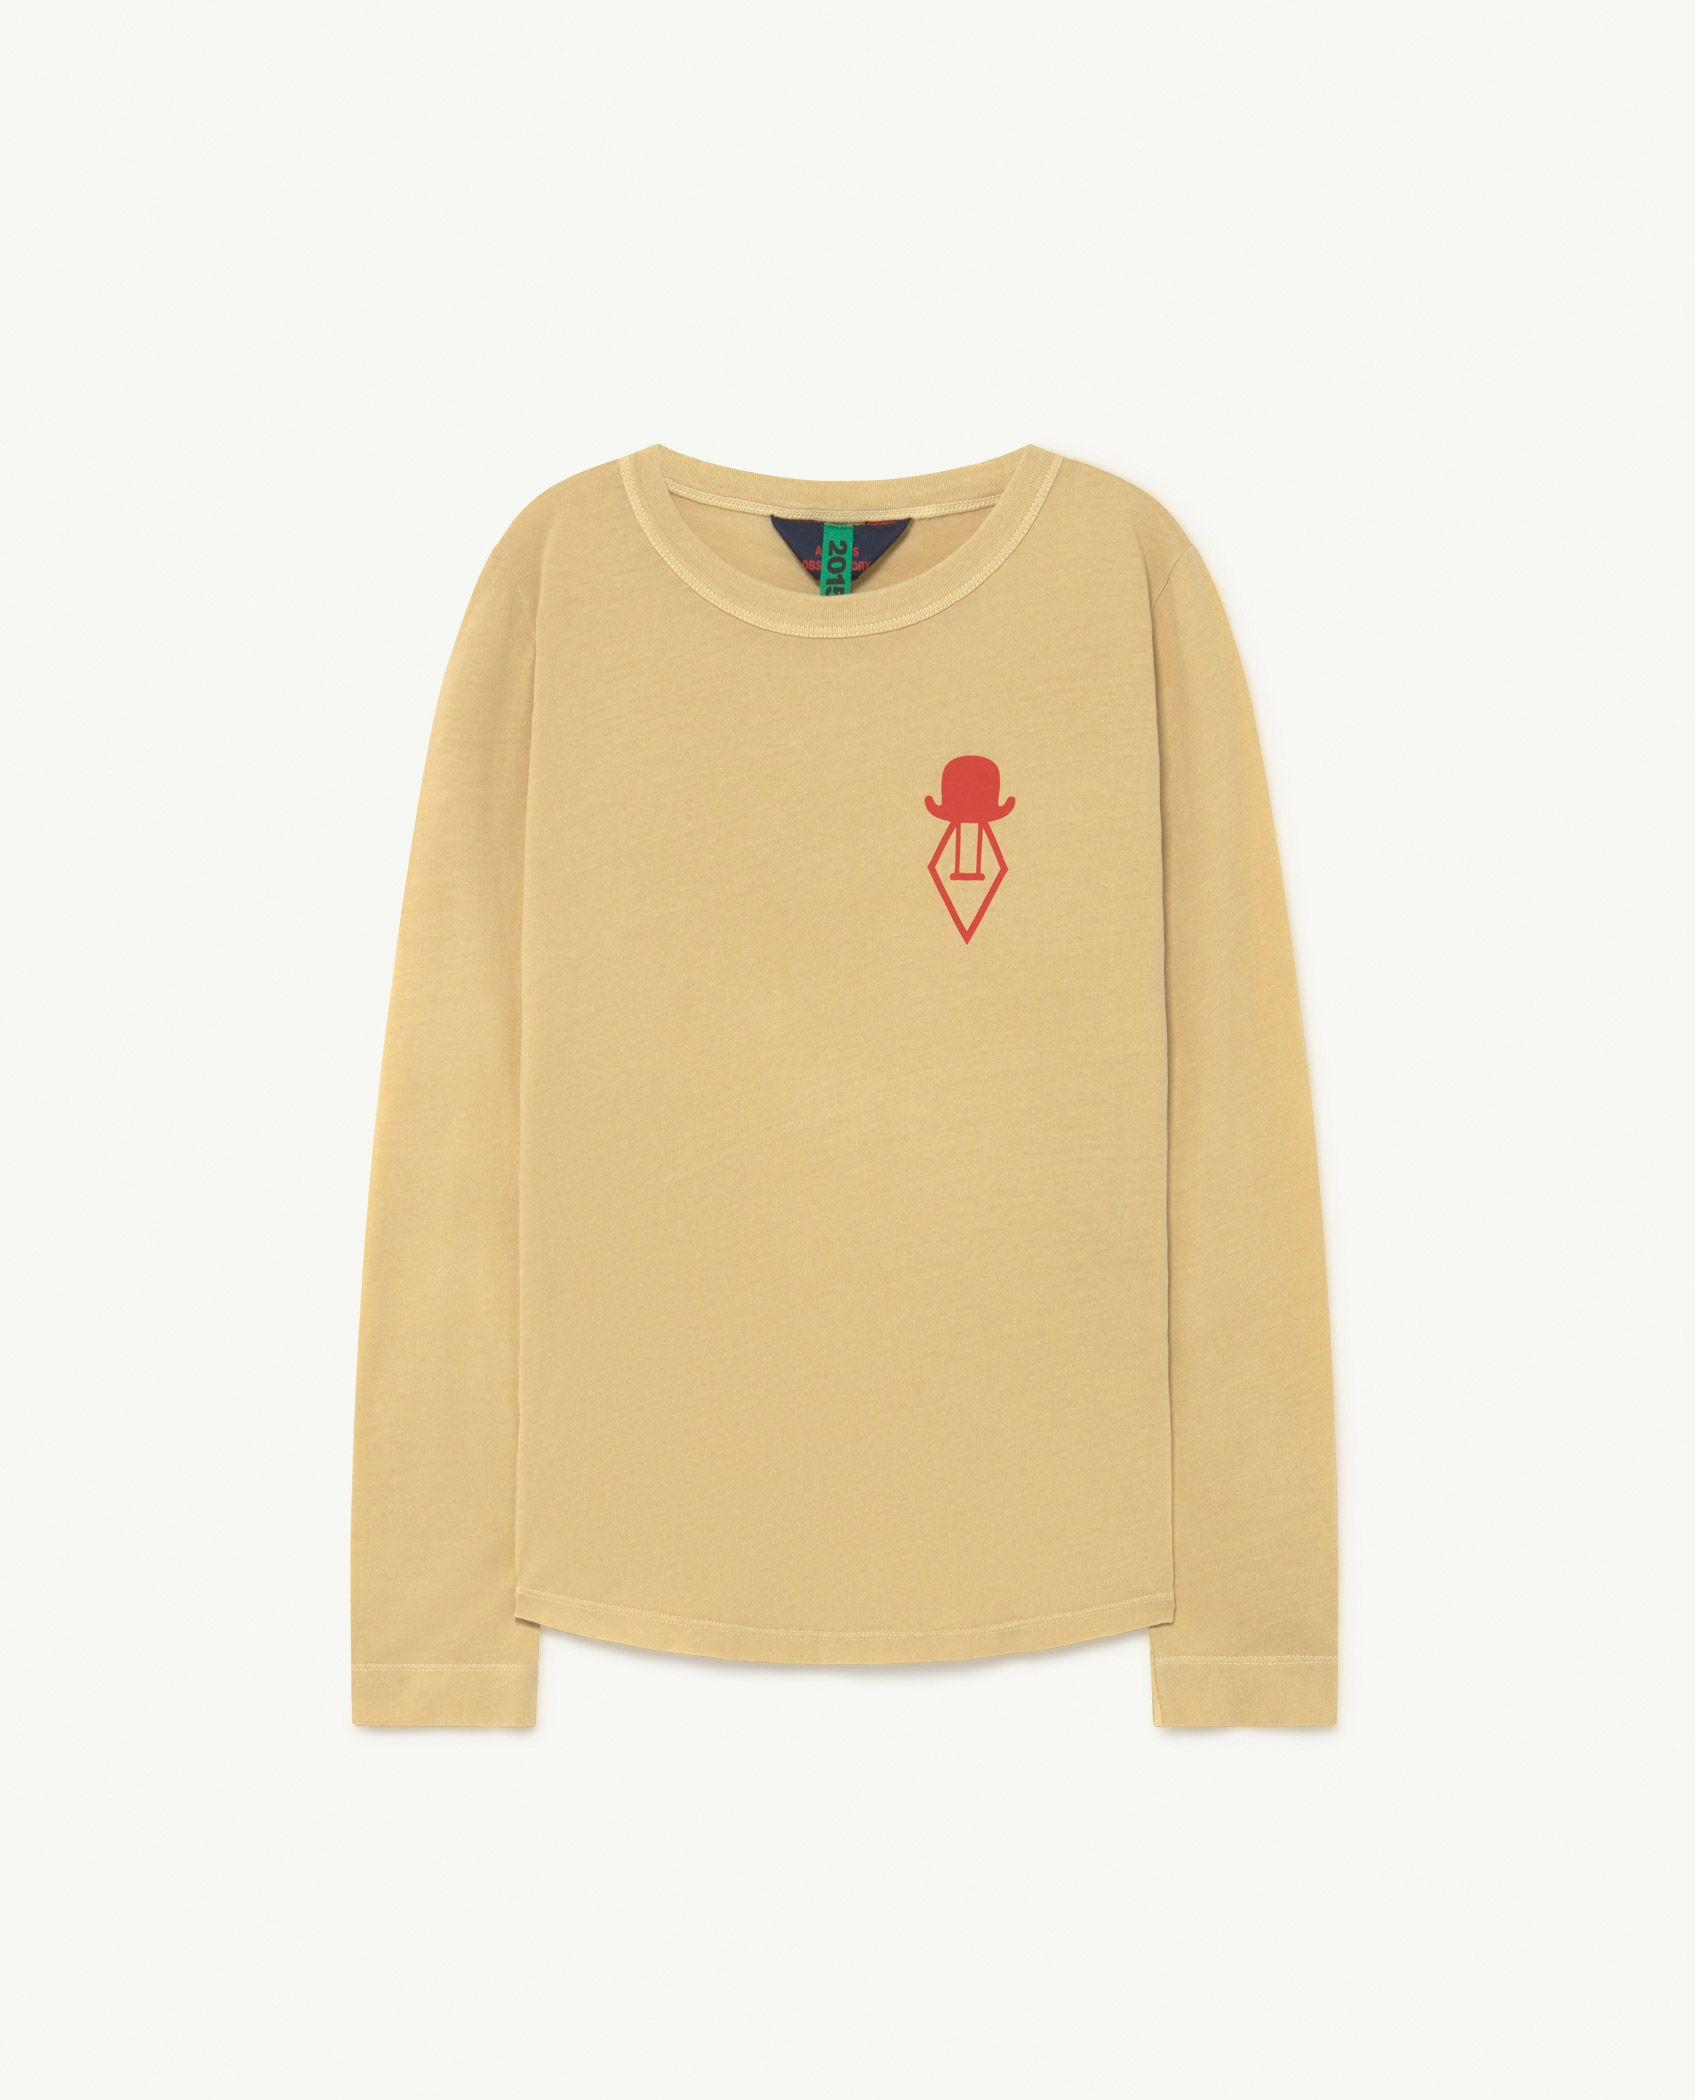 Soft Yellow Cricket Long Sleeve T-shirt img-1